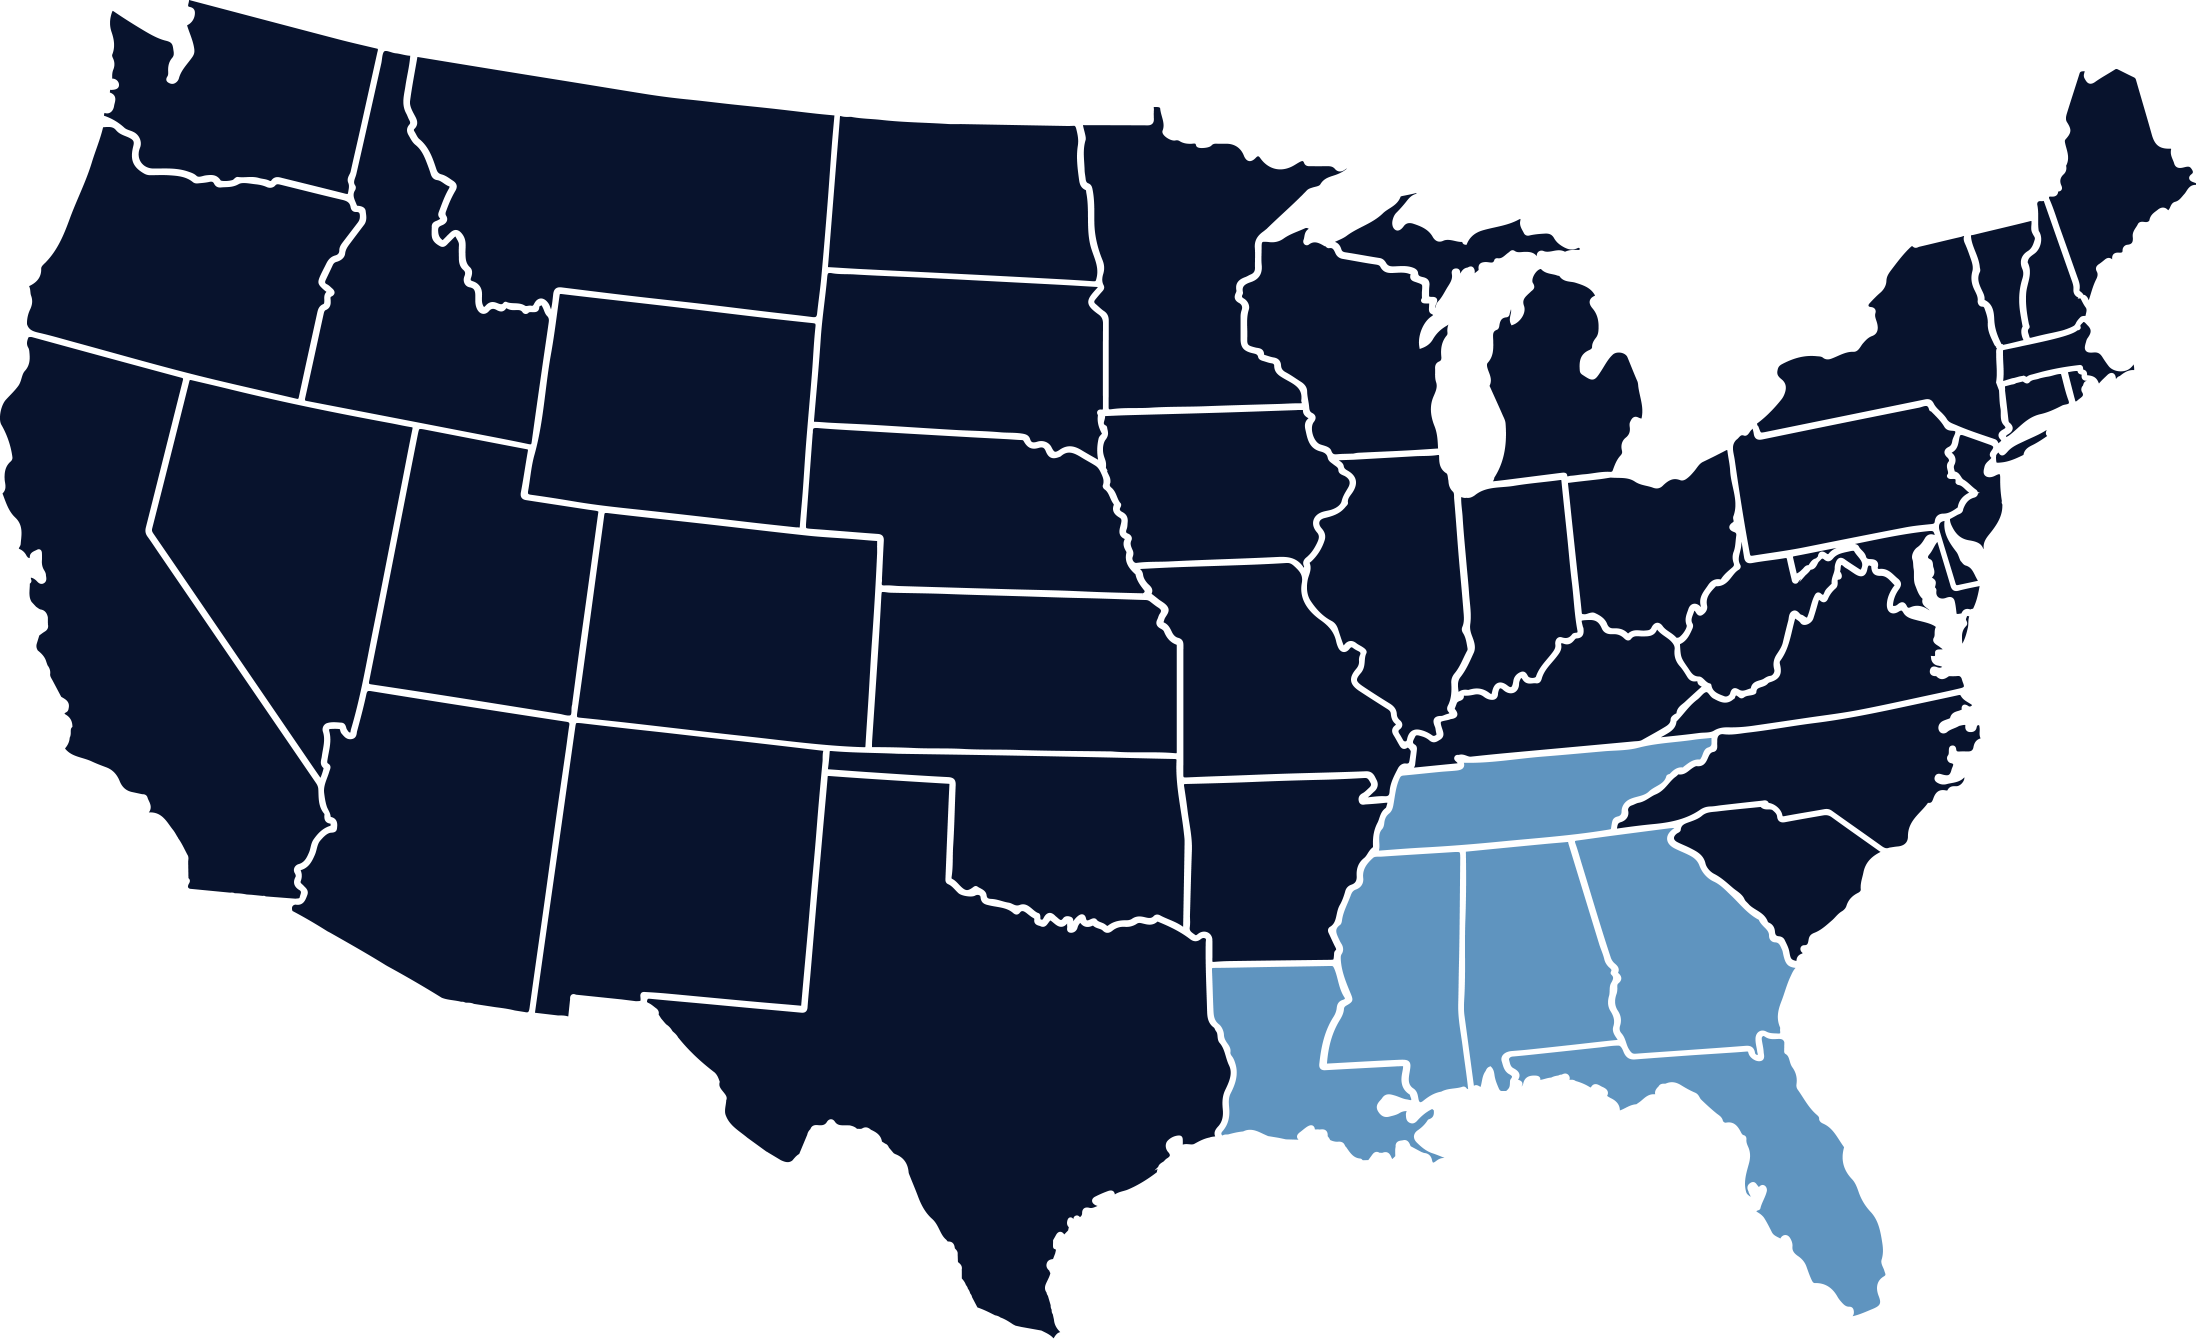 SER Sales   Territory/Sales Force on ky and tn, map of alabama and ms, map of kentucky and tenn border, map of florida georgia and tennessee, 1940 map nashville tn, map of carolina's and georgia, map florida to tennessee, map of alabama and ge, map of florida alabama border, map of alabama and surrounding states, map of north alabama and tennessee, map of tennessee alabama border, map of haleyville alabama,